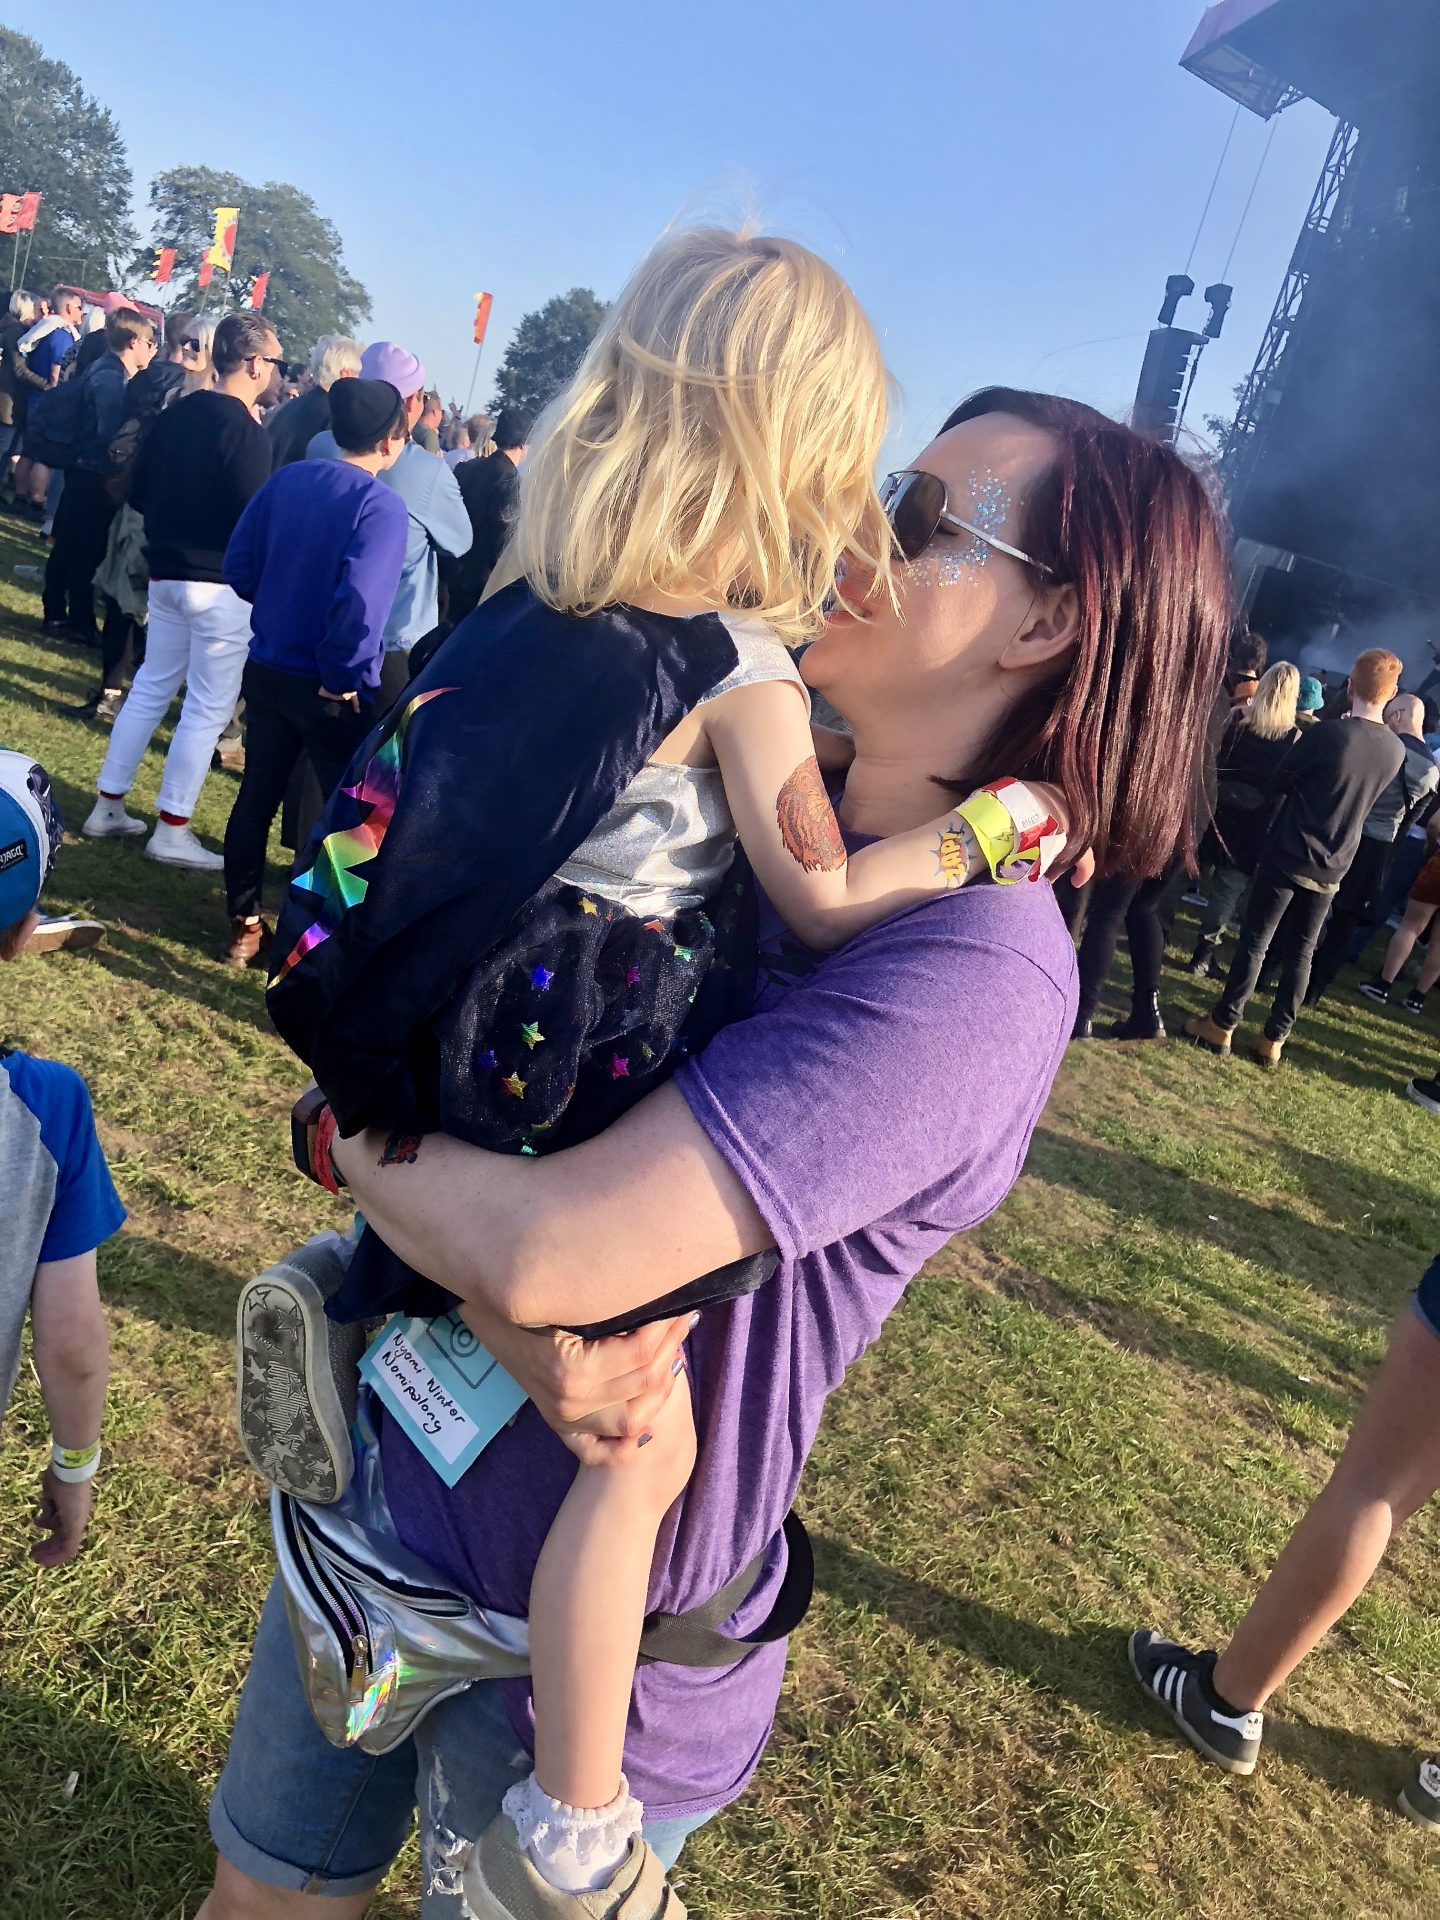 Woman carrying a 3 year old at the main stage of a festival.